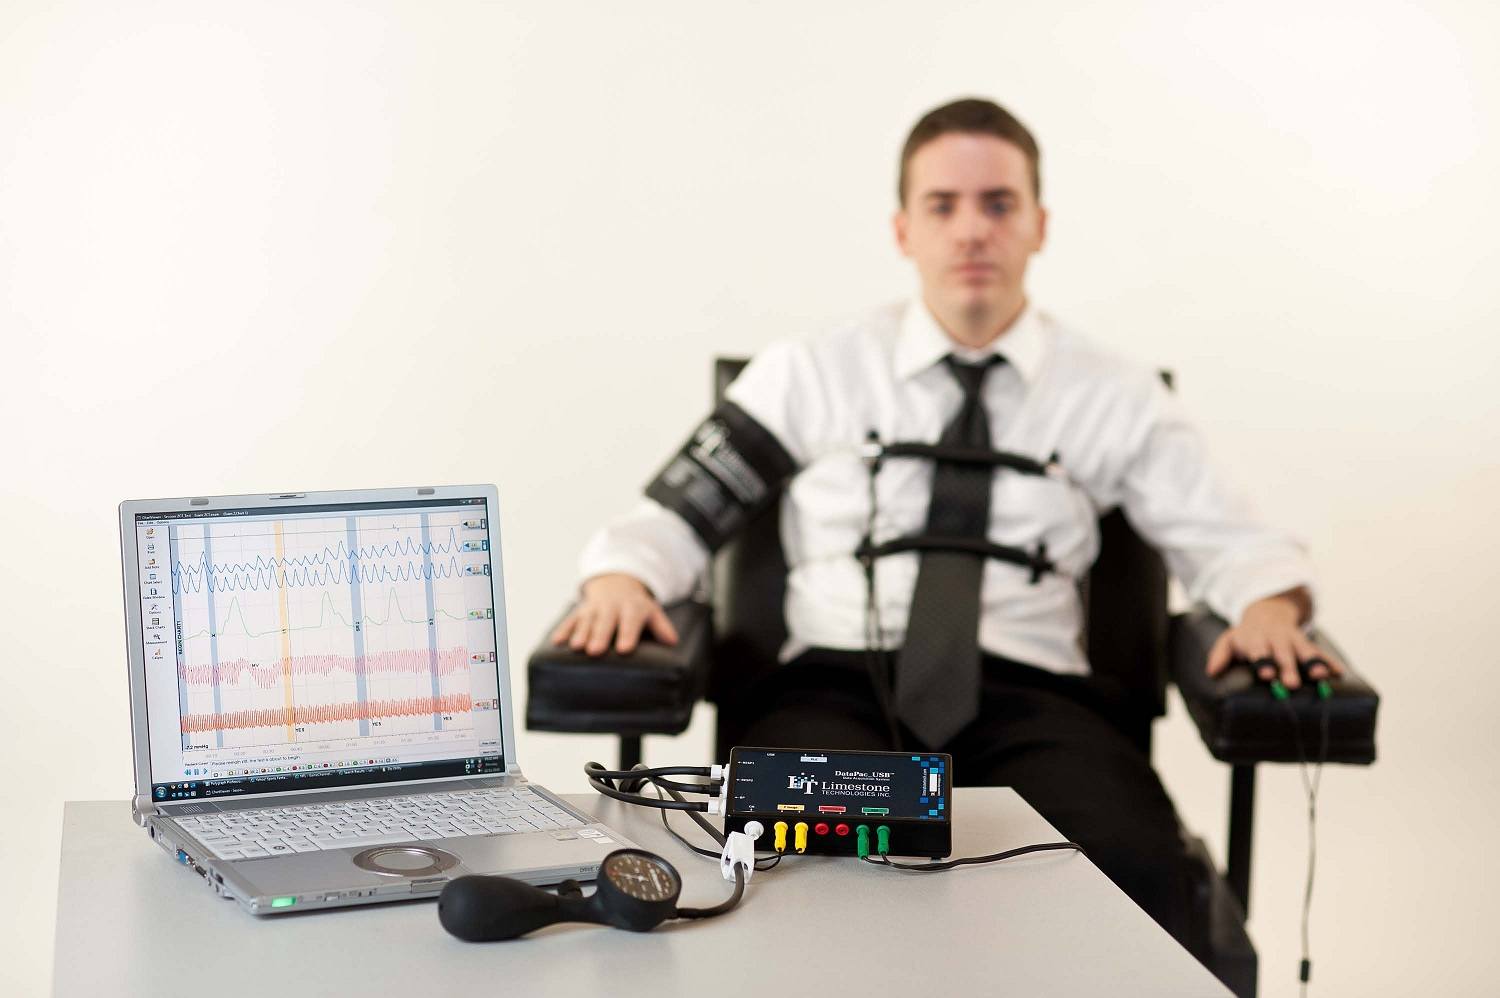 Jew Detector: Experts Think Proposal For Polygraph Tests A Bad Idea